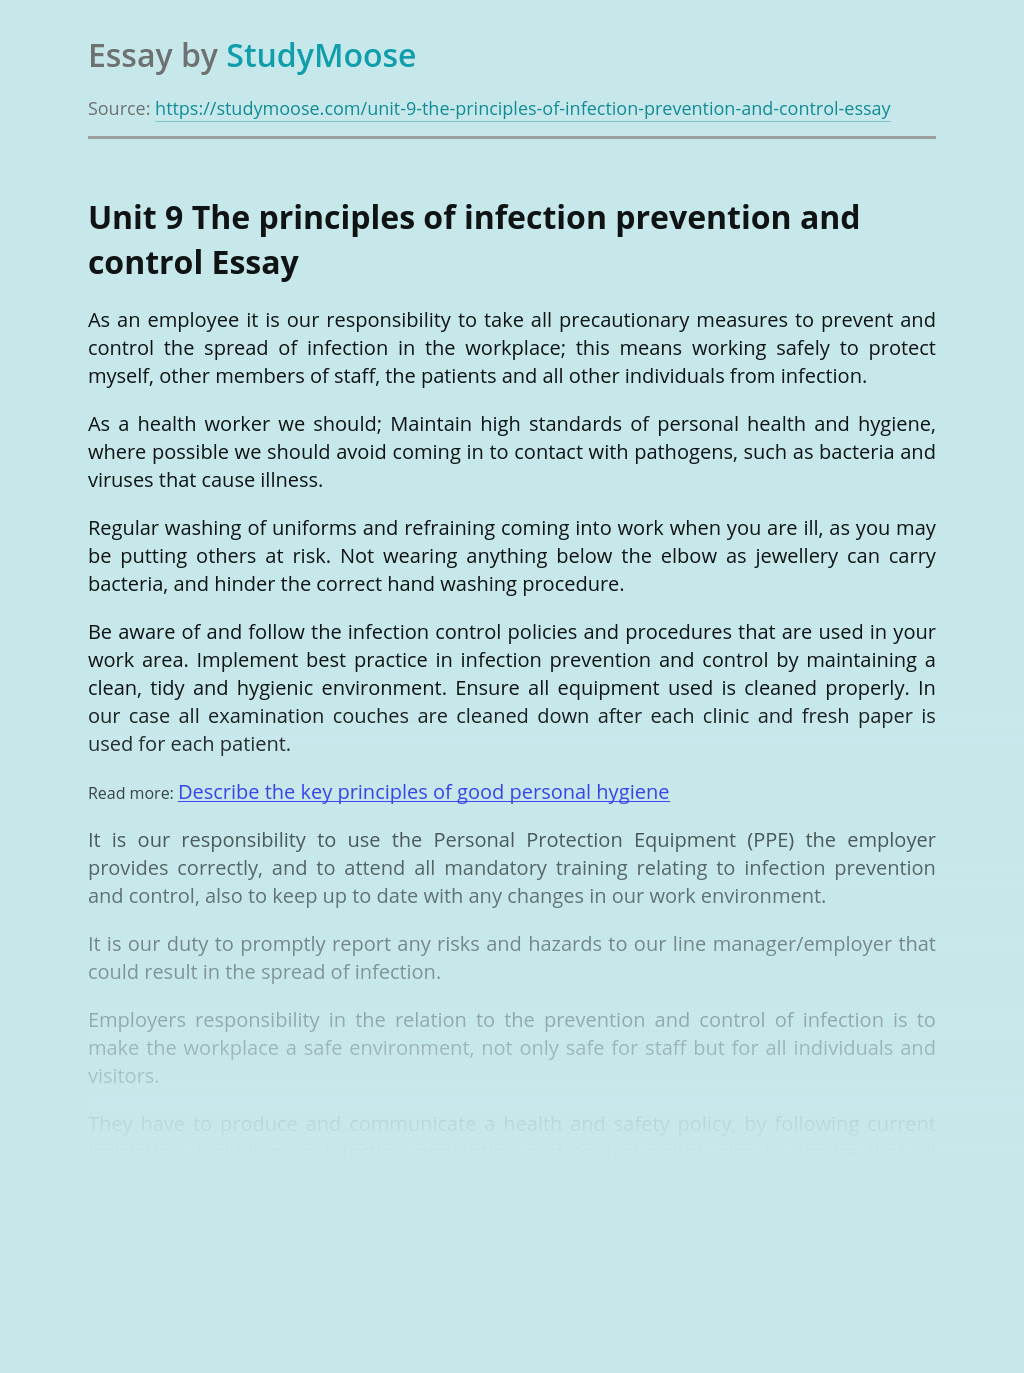 Unit 9 The principles of infection prevention and control